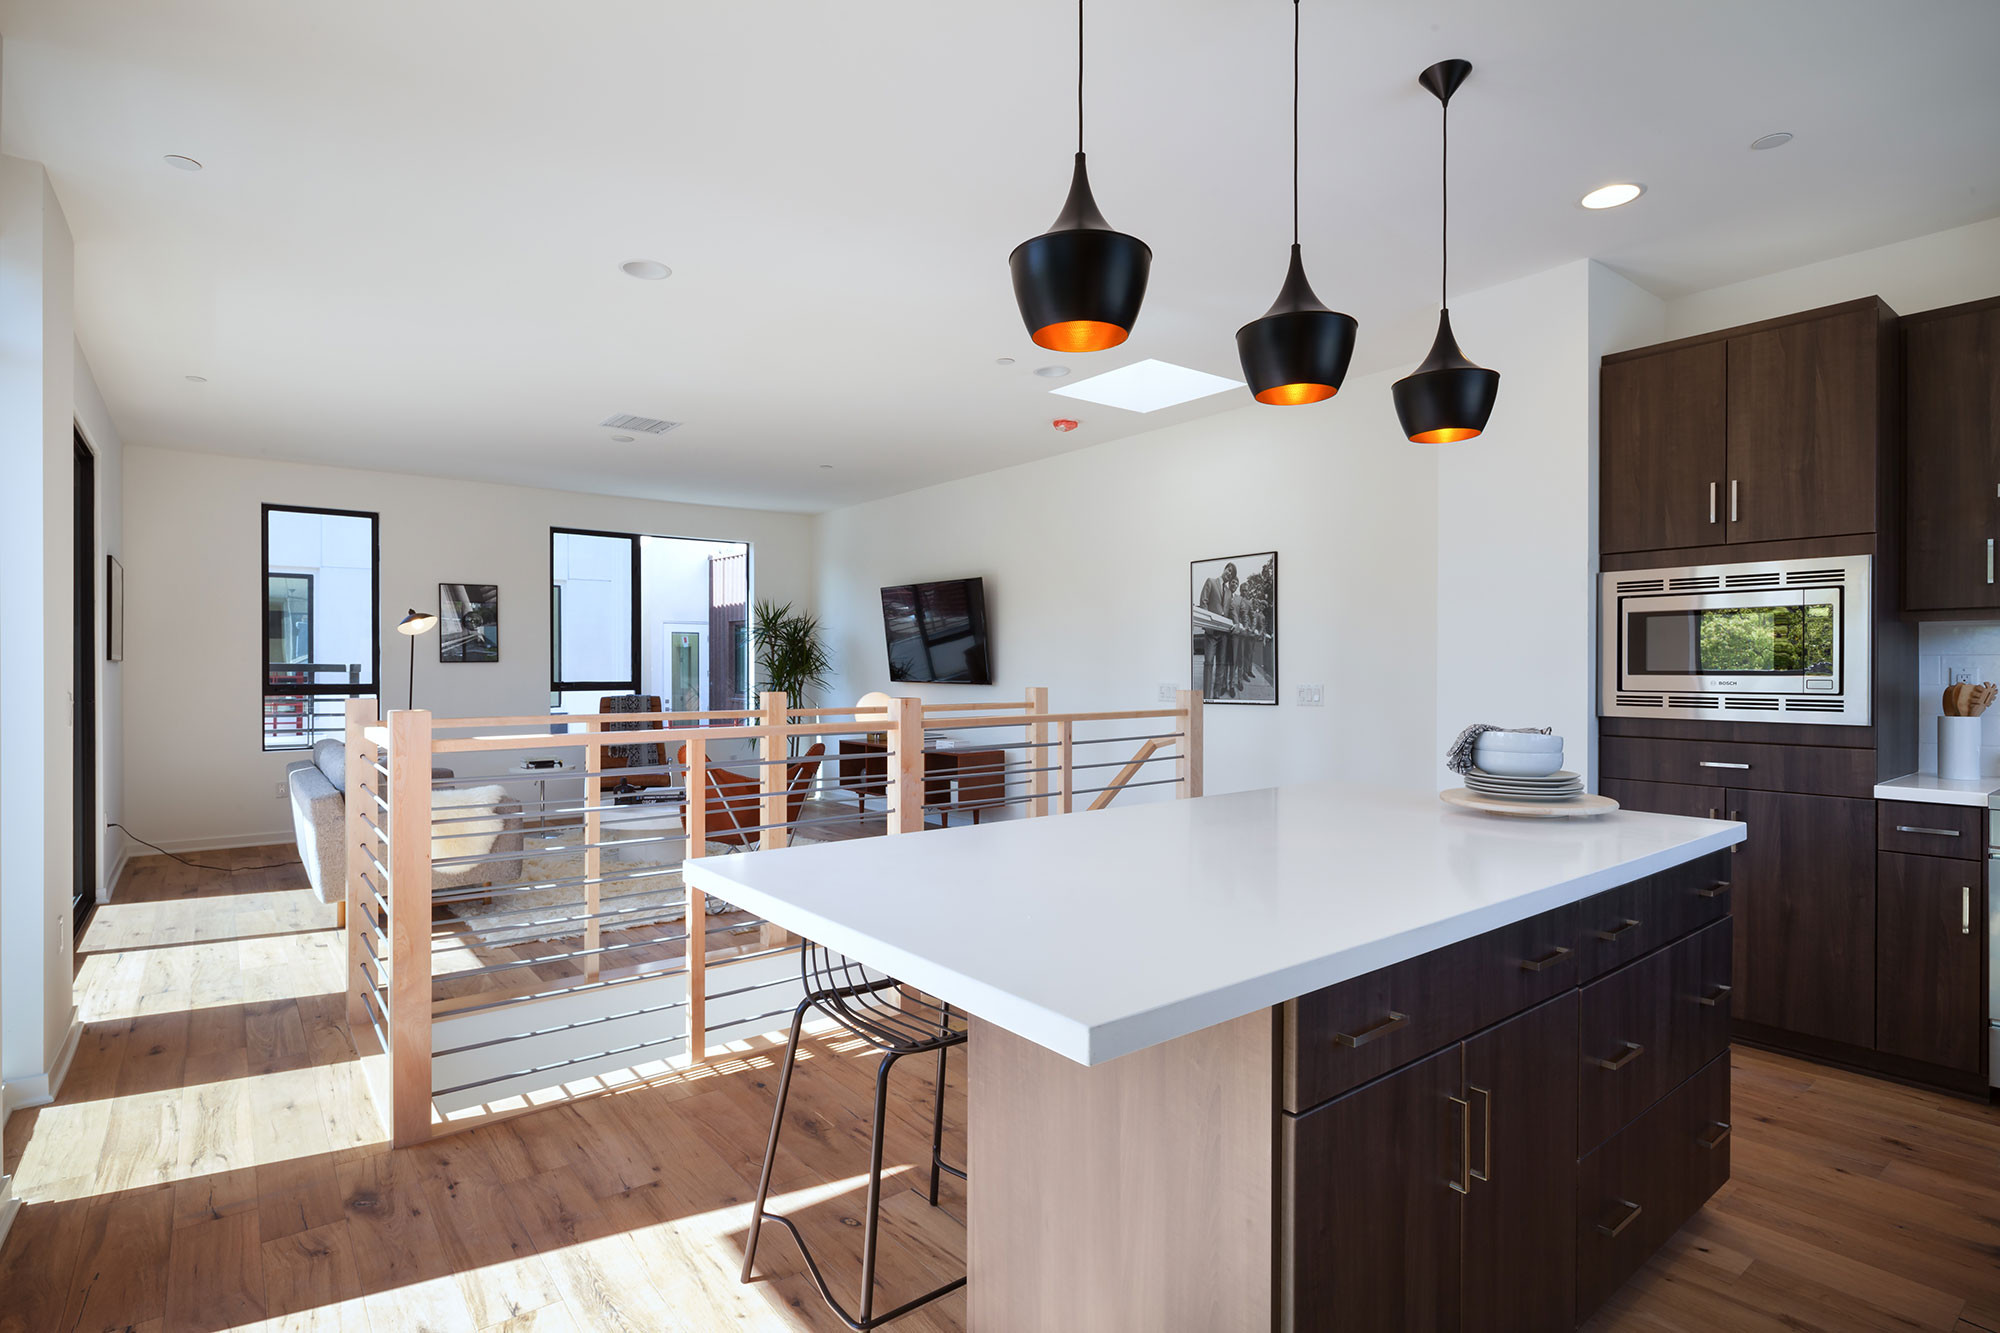 hardwood floor specialists costa mesa ca of media ktgy architects regarding covo int 020